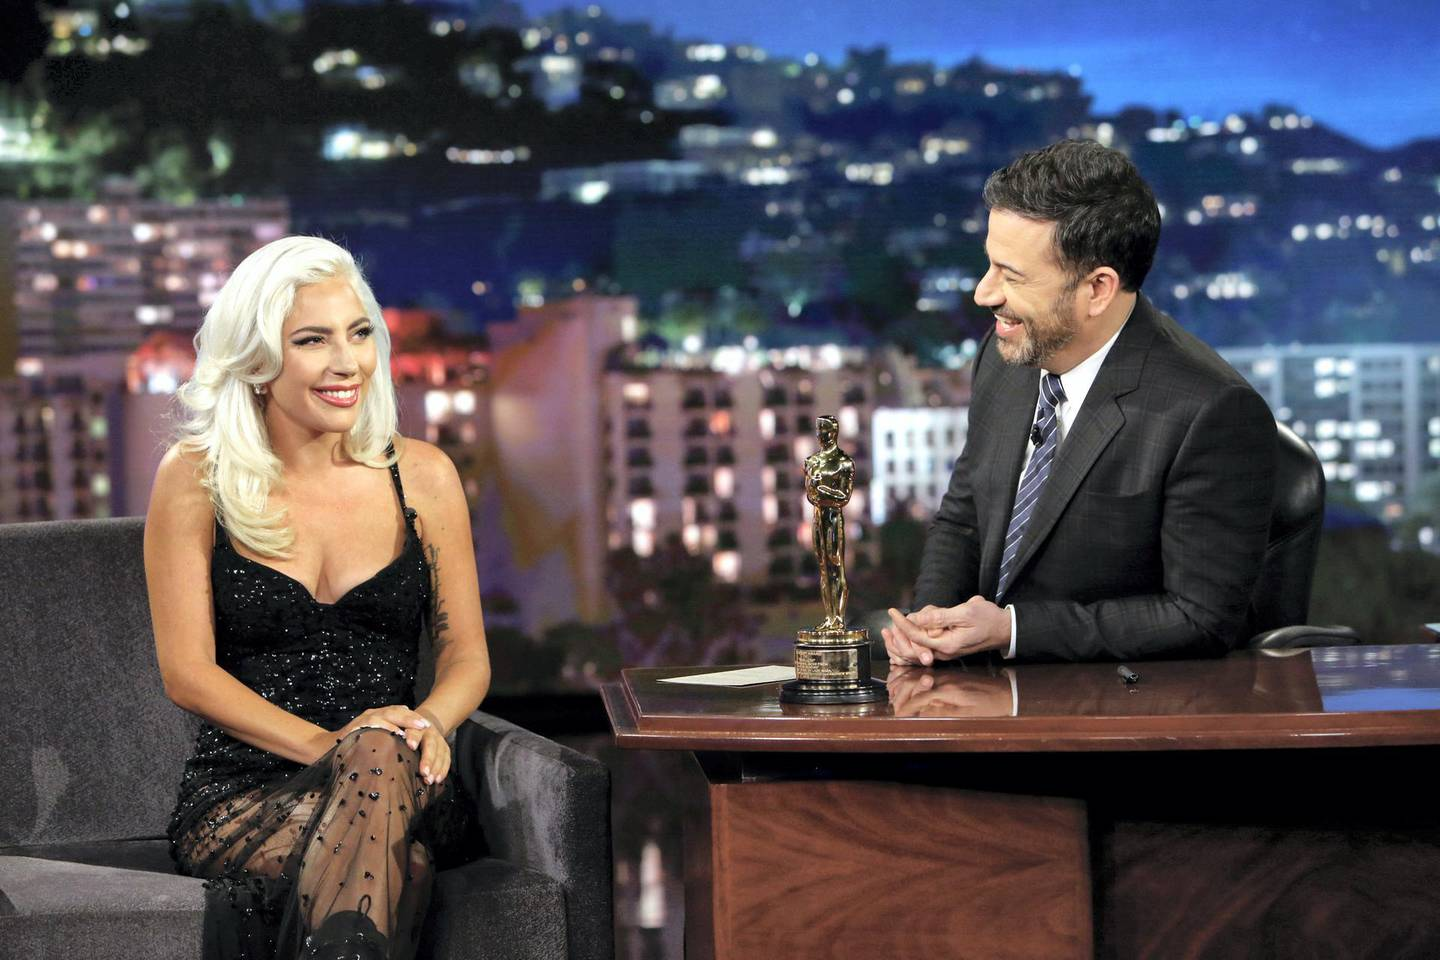 """JIMMY KIMMEL LIVE! - """"Jimmy Kimmel Live!"""" airs every weeknight at 11:35 p.m. EST and features a diverse lineup of guests that include celebrities, athletes, musical acts, comedians and human interest subjects, along with comedy bits and a house band. The guests for Wednesday, February 27, included Lady Gaga (Academy Award Winner), Adam Carolla (""""Not Taco Bell Material""""), and musical guest Maná. (Randy Holmes via Getty Images) LADY GAGA, JIMMY KIMMEL"""